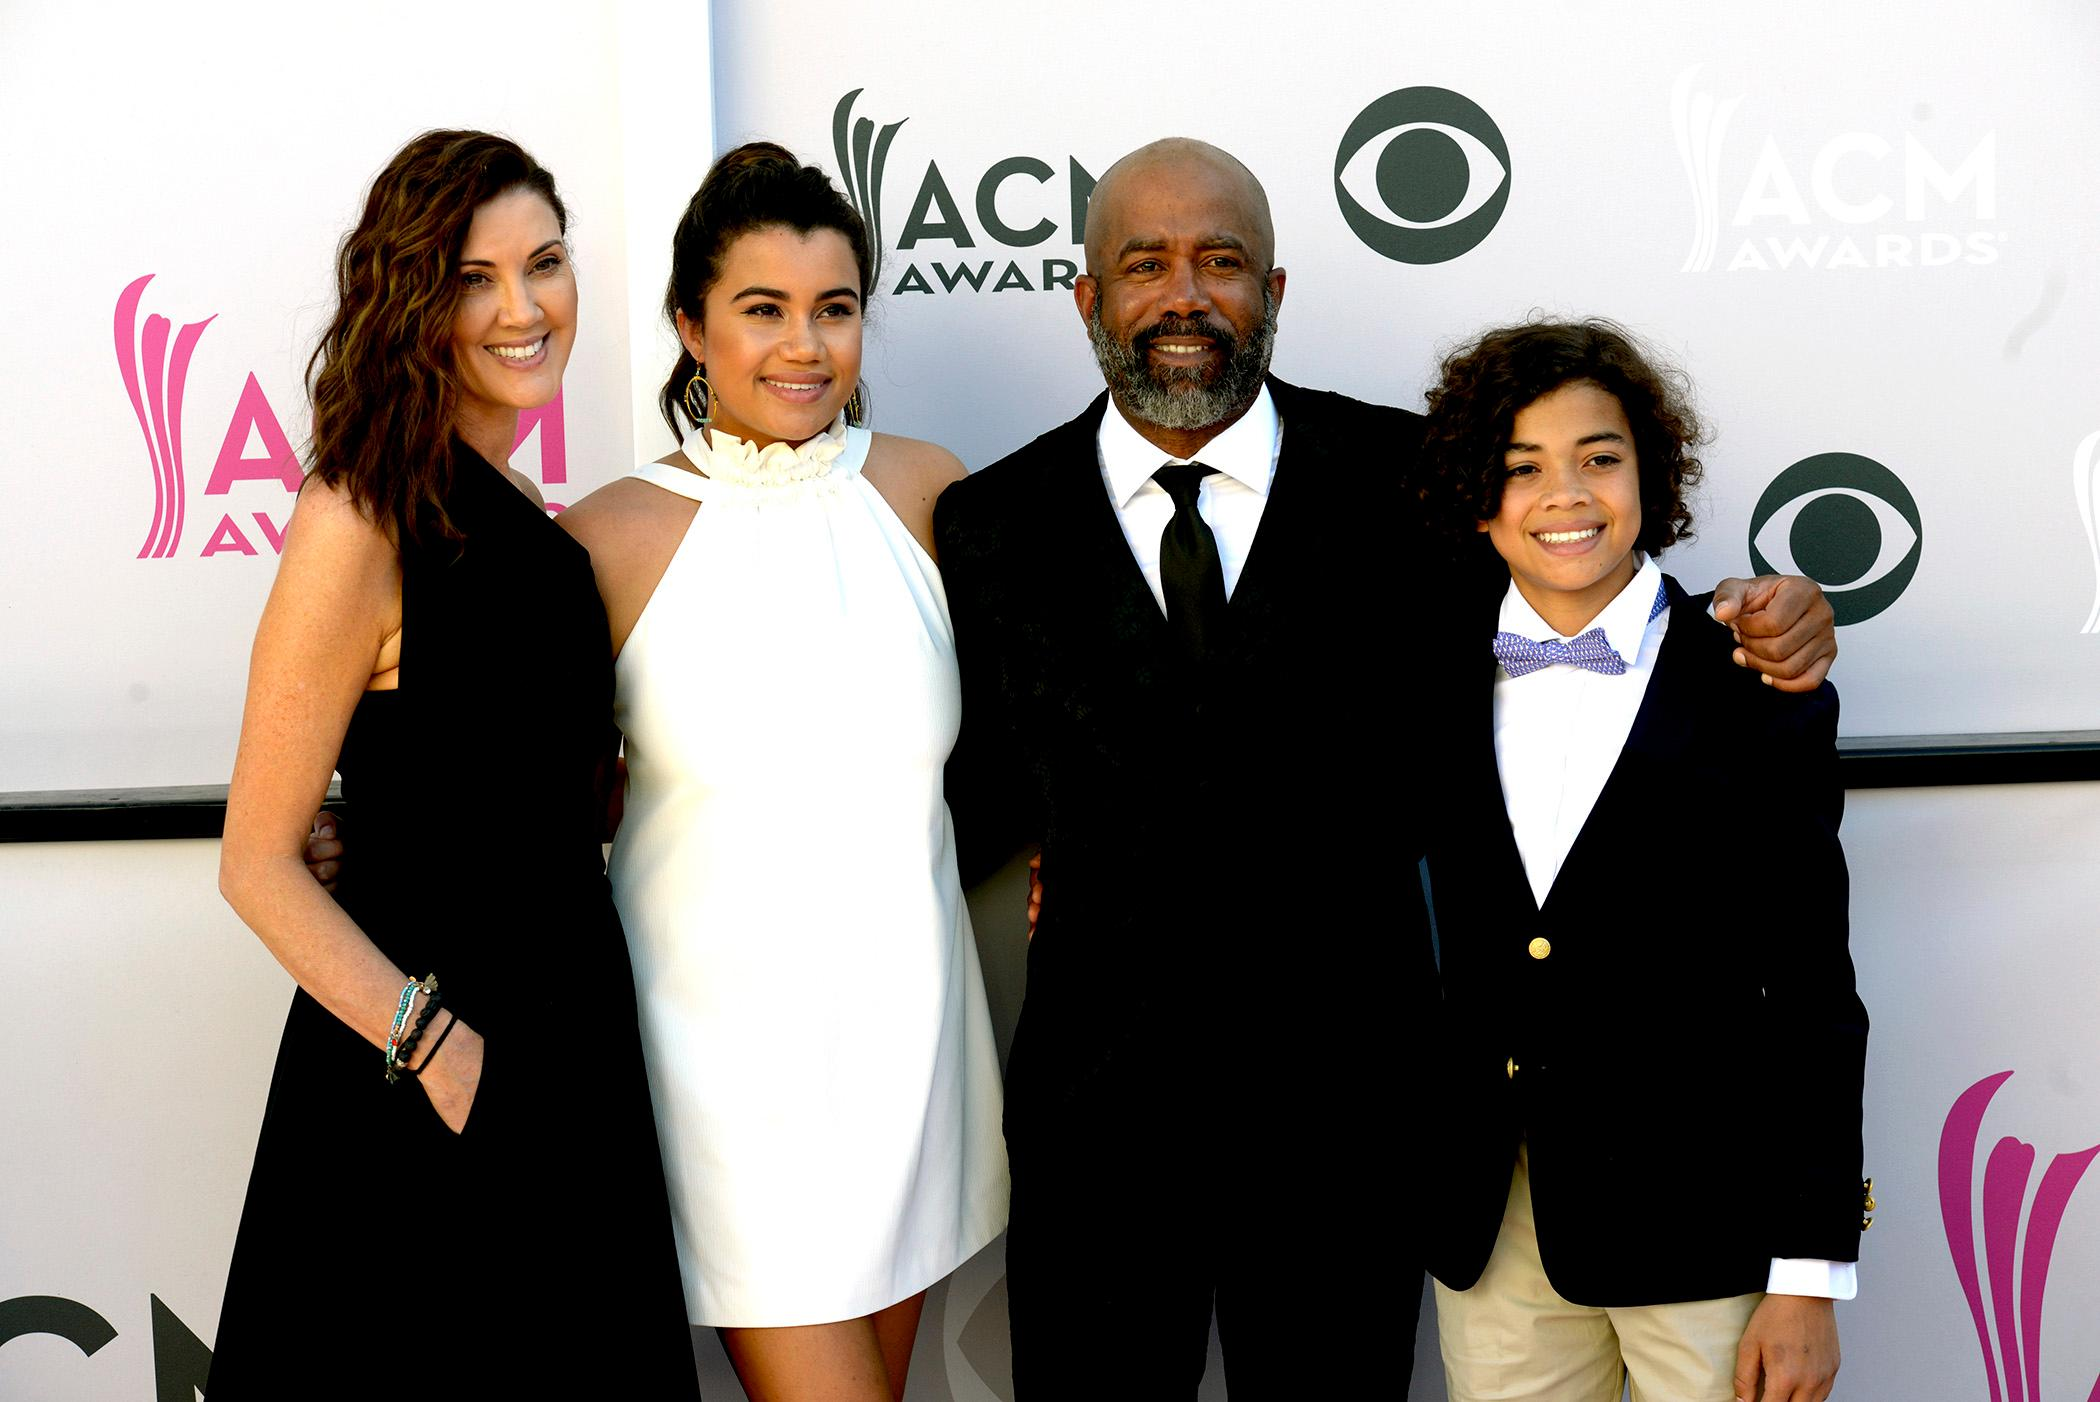 Singer Darius Rucker and his family walk the Academy of Country Music Awards red carpet at T-Mobile Arena. Sunday, April 2, 2017. (Glenn Pinkerton/ Las Vegas News Bureau)